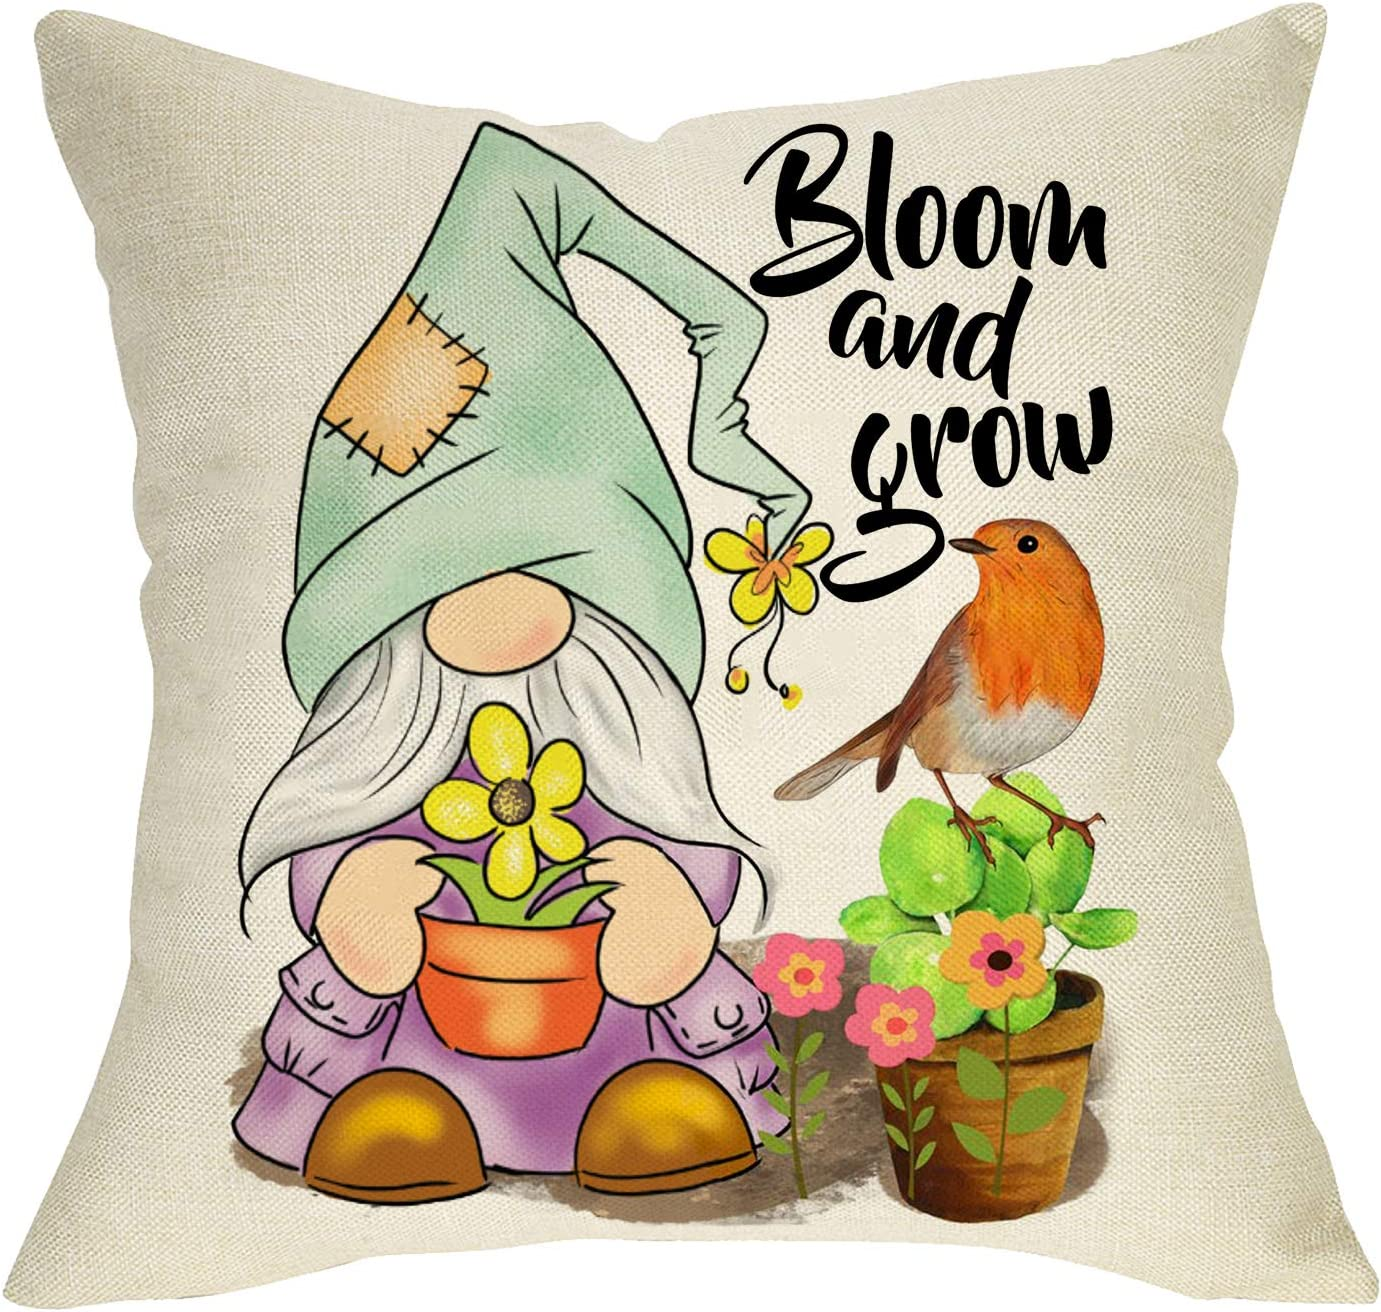 Softxpp Spring Gnome Decorative Throw Pillow Cover, Bloom and Grow Bird Sign Cushion Case, Home Flower Butterfly Decorations Cotton Linen Square Outside Pillowcase Decor for Sofa Couch 18 x 18